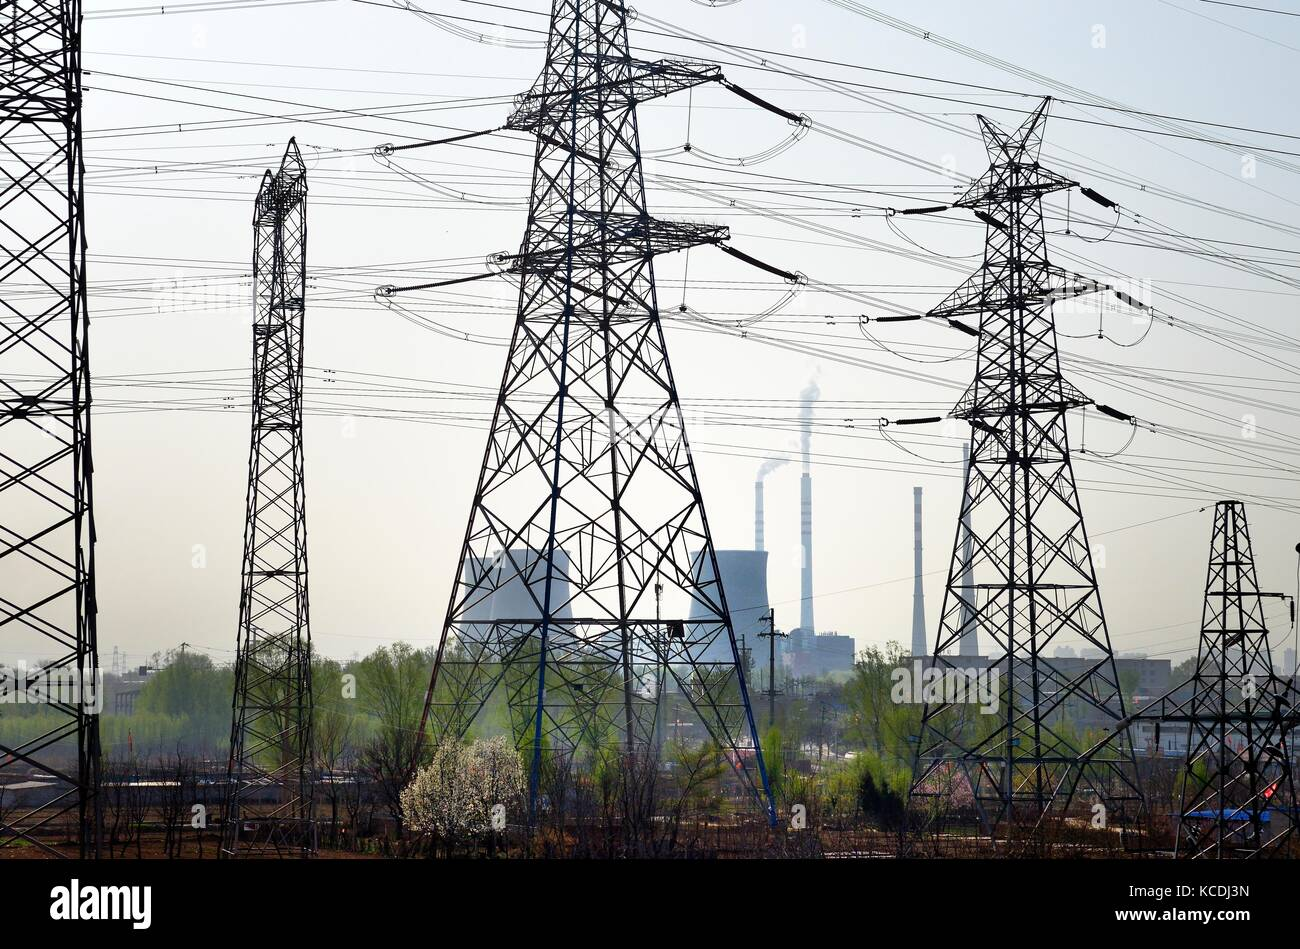 Chinese coal powered electricity generating power station on north side of city of Taiyuan, China. Cooling towers - Stock Image